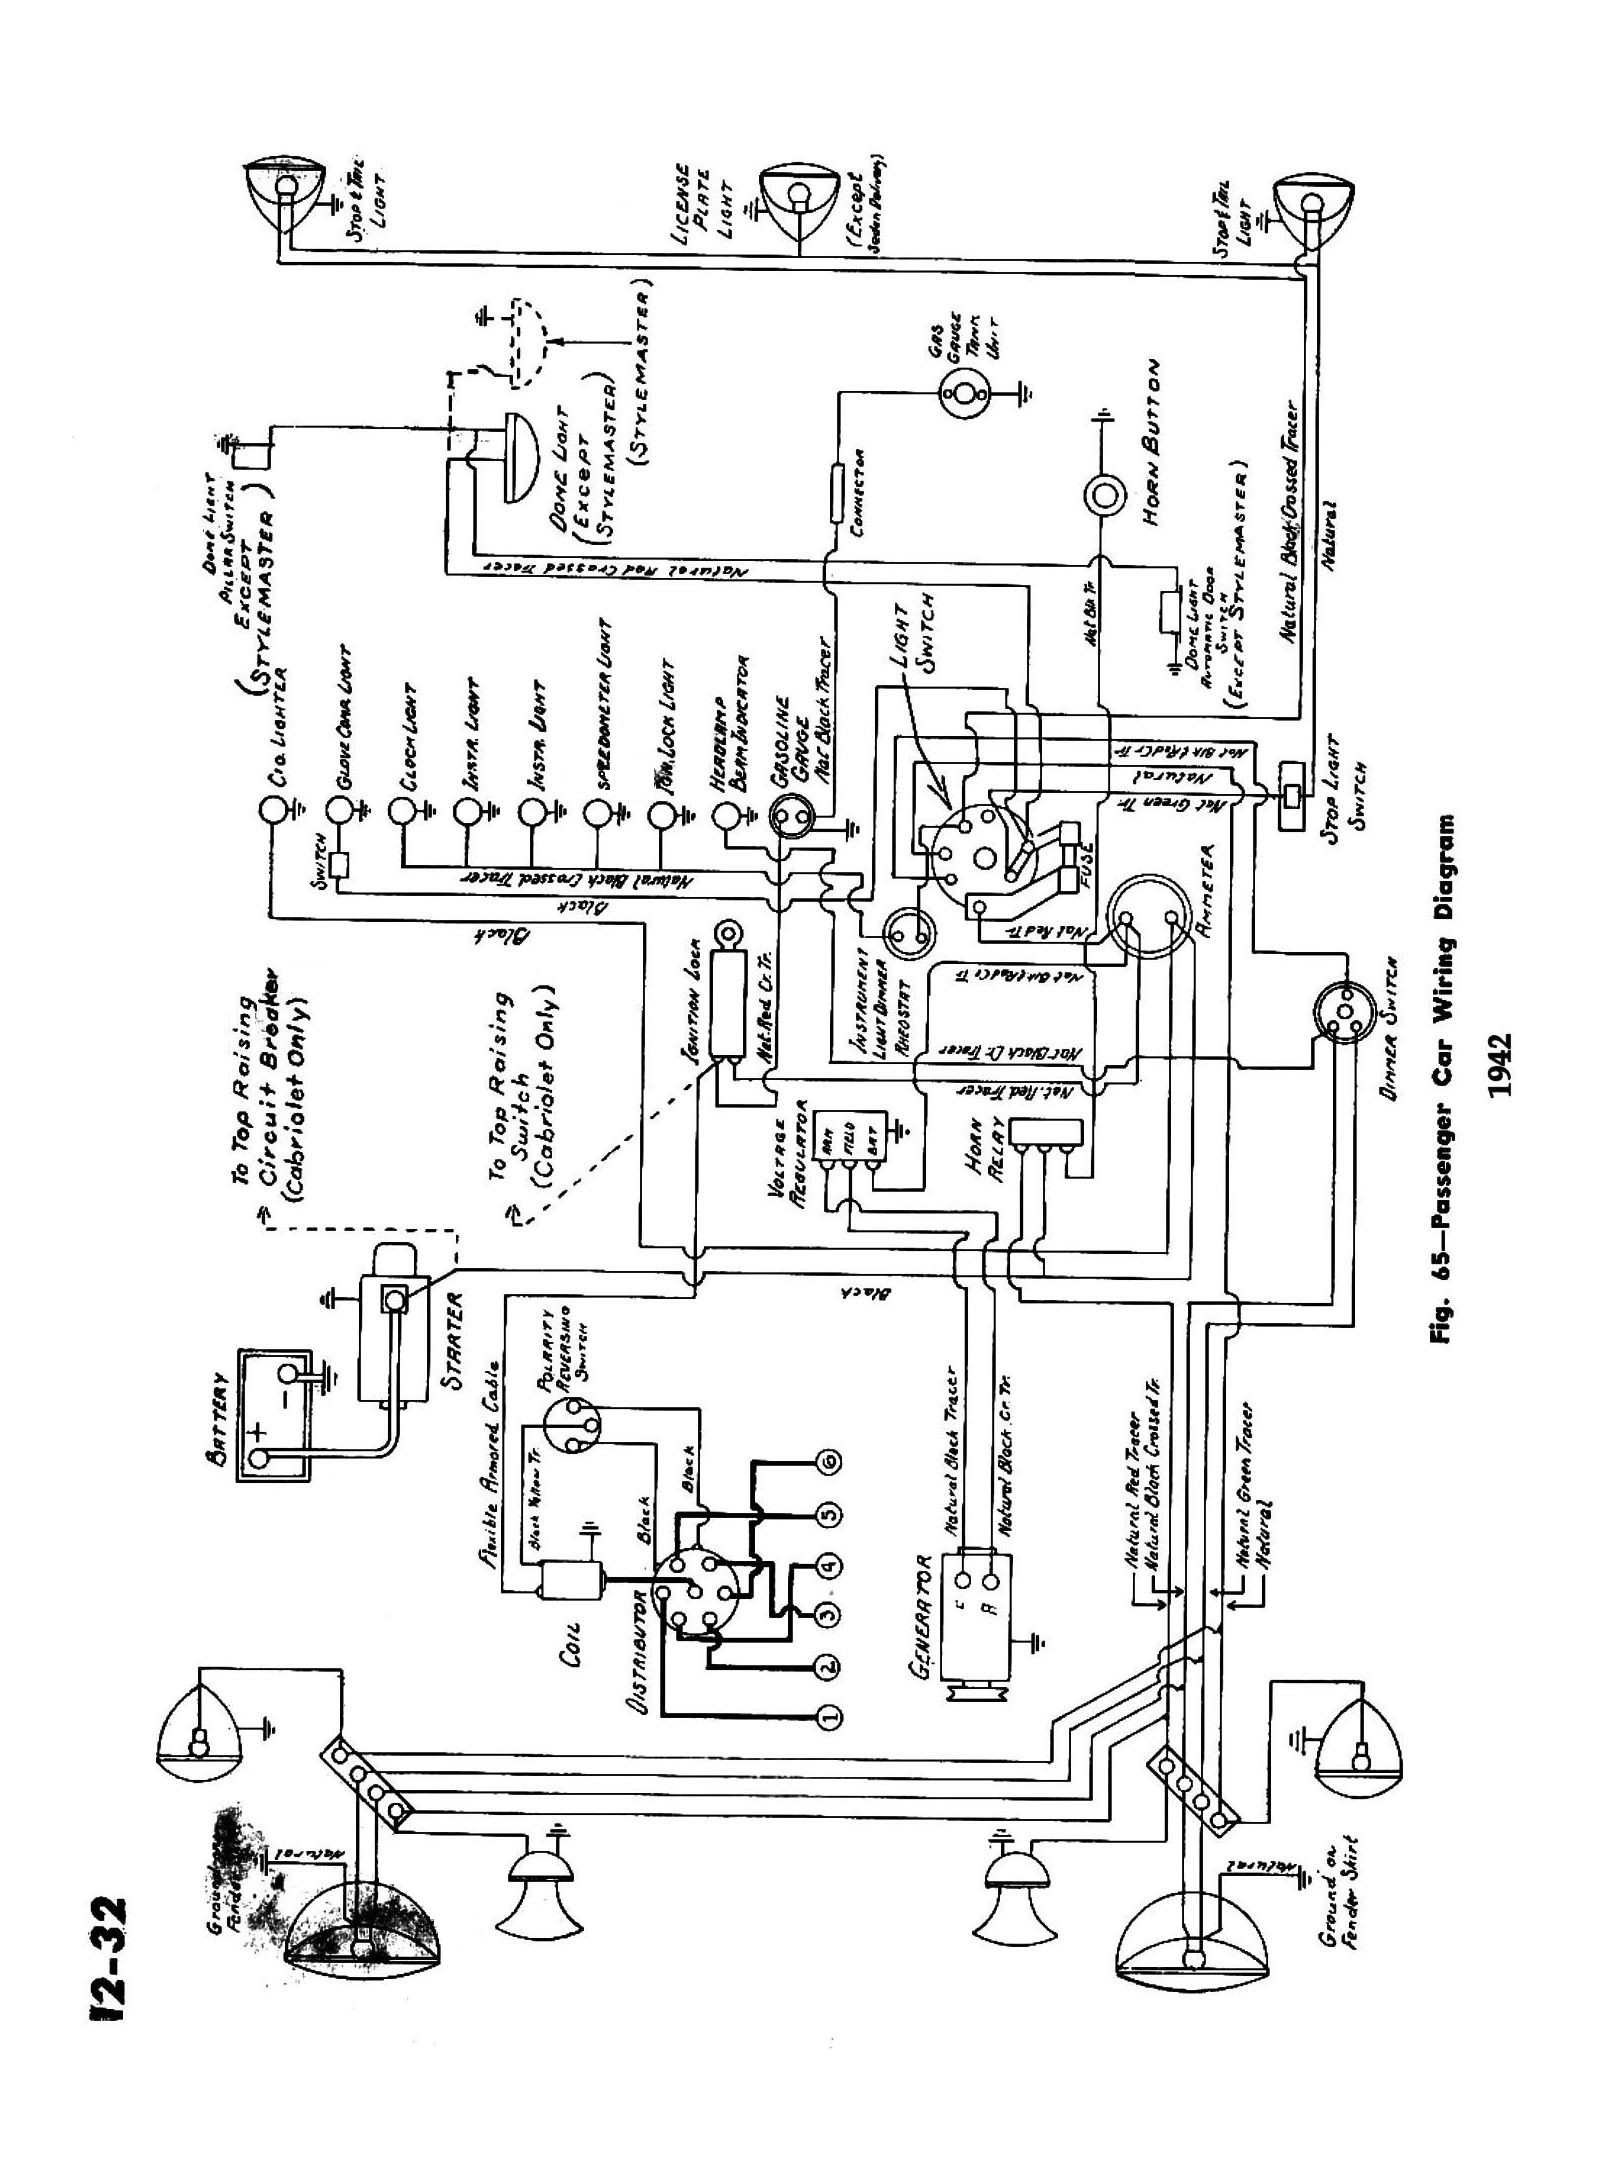 42csm1232a 1950 chevy truck wiring harness on 1950 download wirning diagrams Ford Schematics at bayanpartner.co